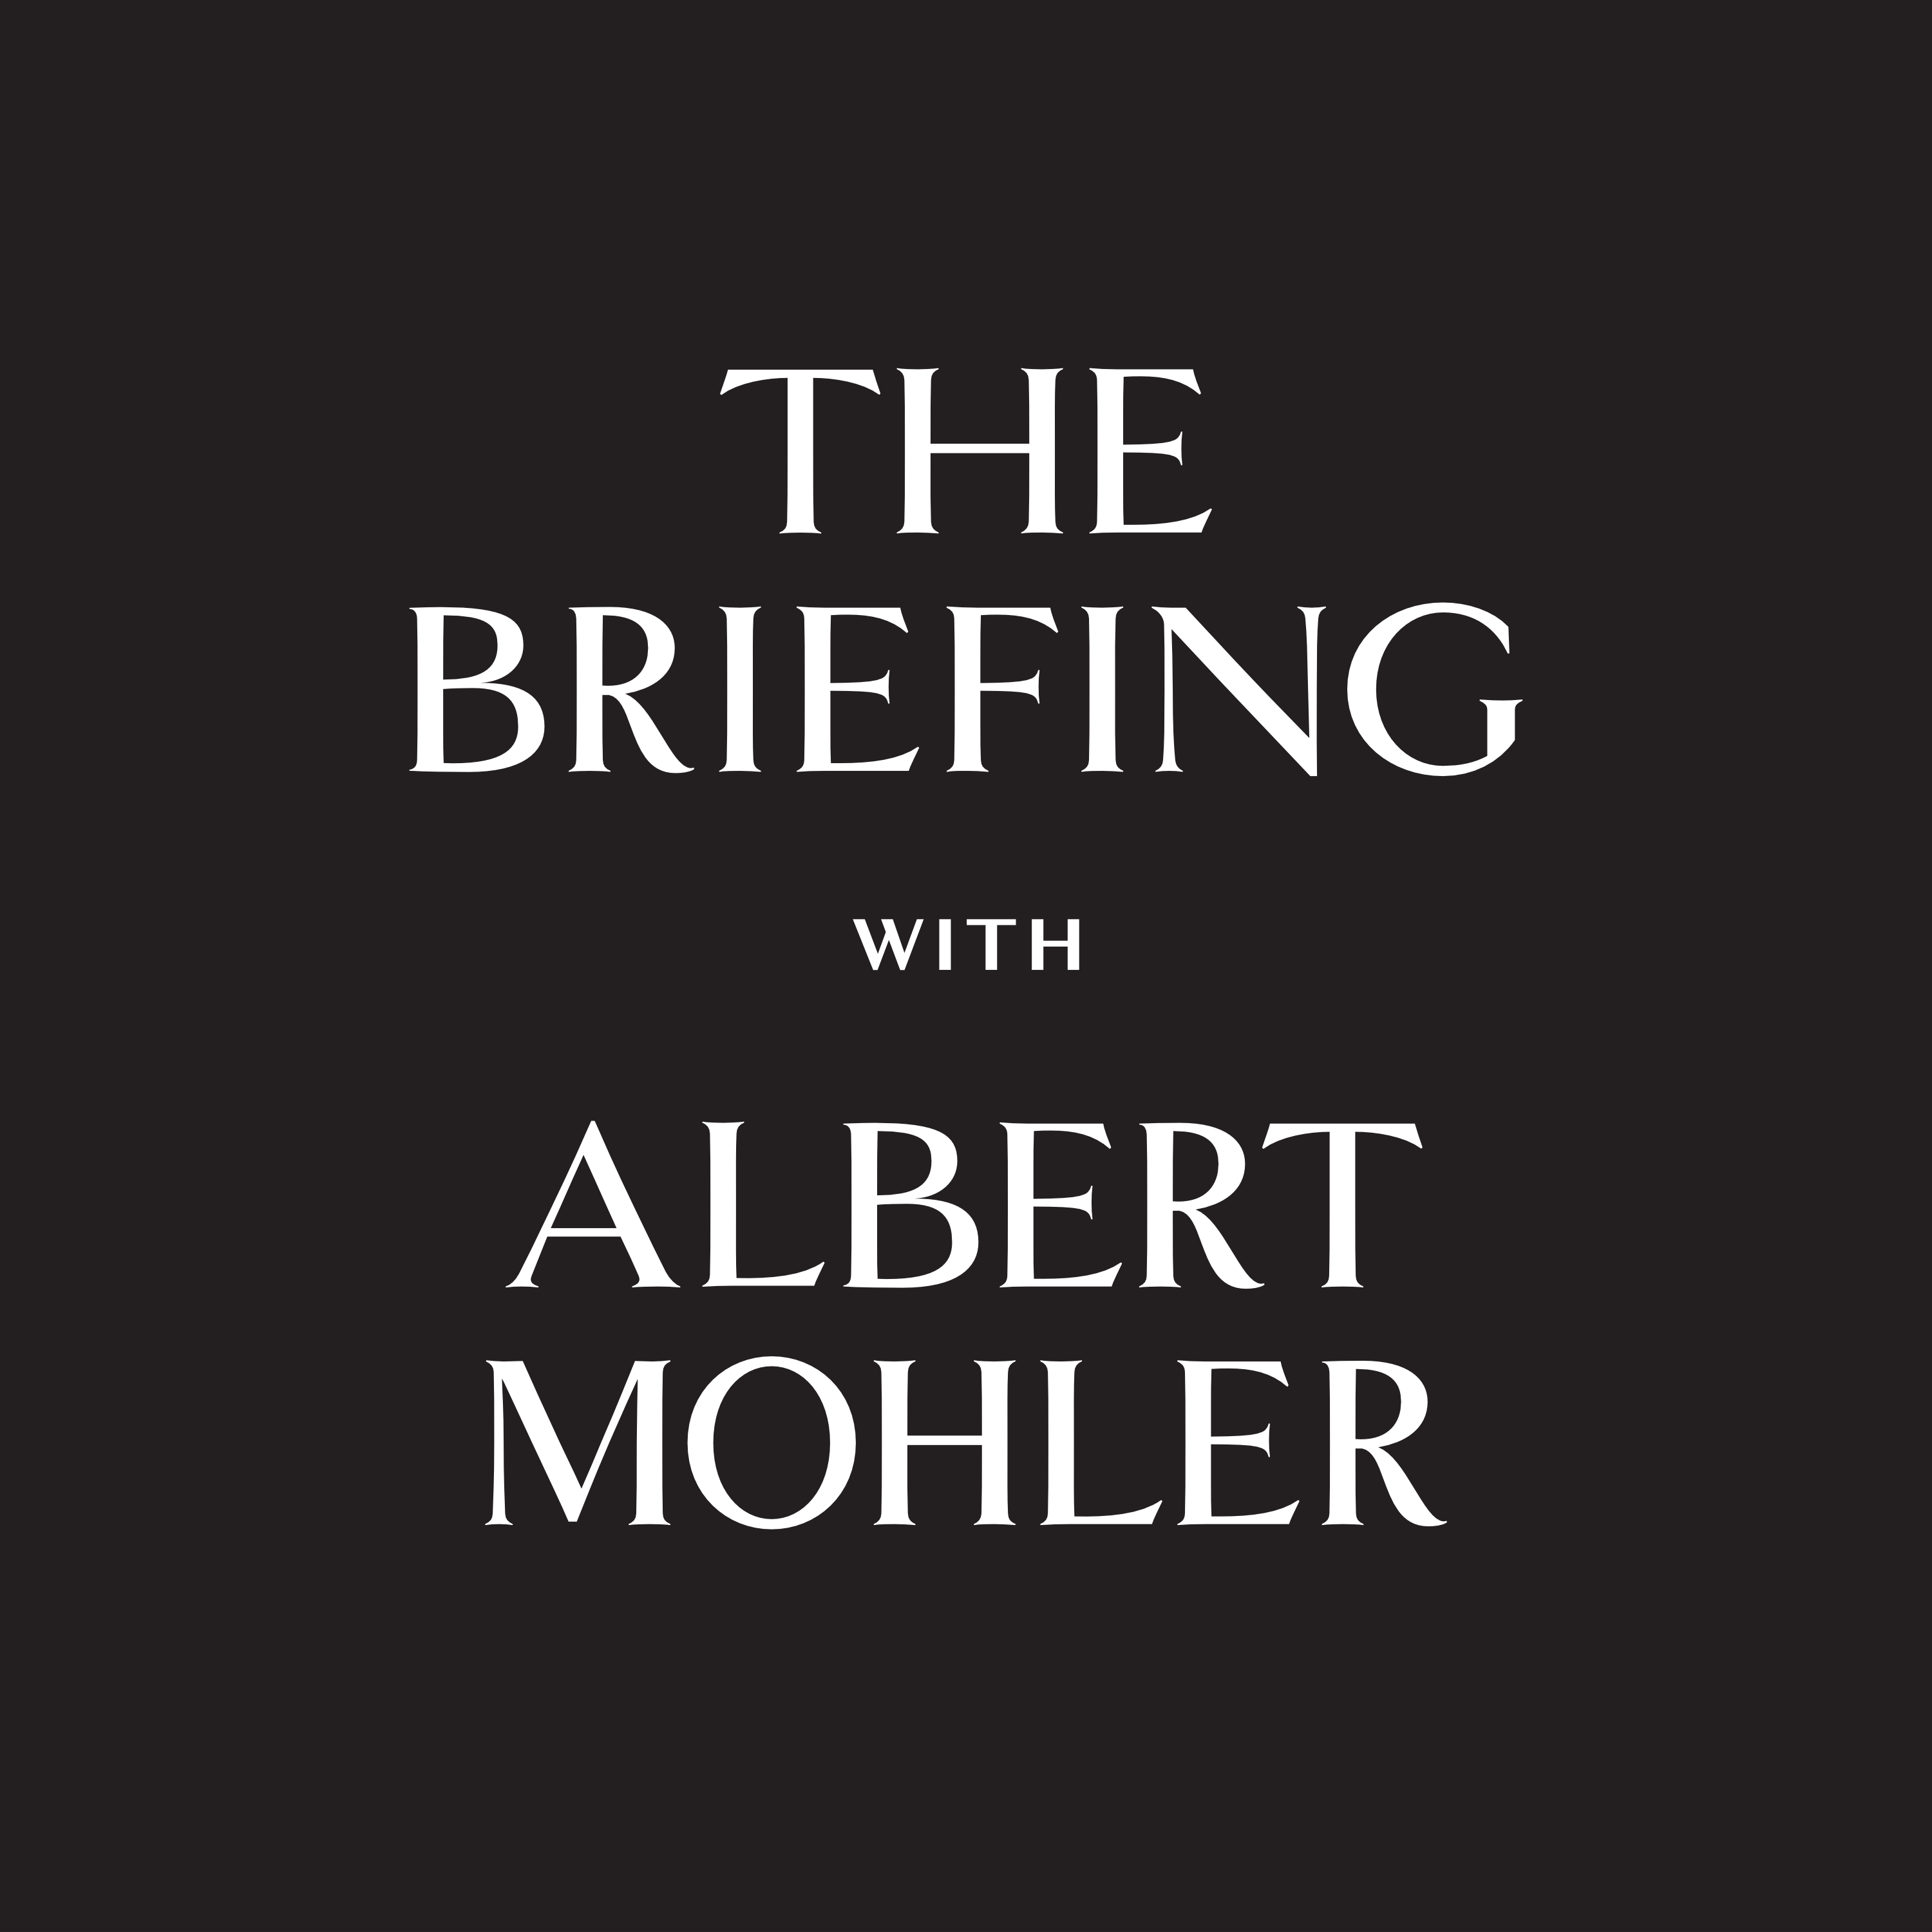 The Briefing with Albert Mohler